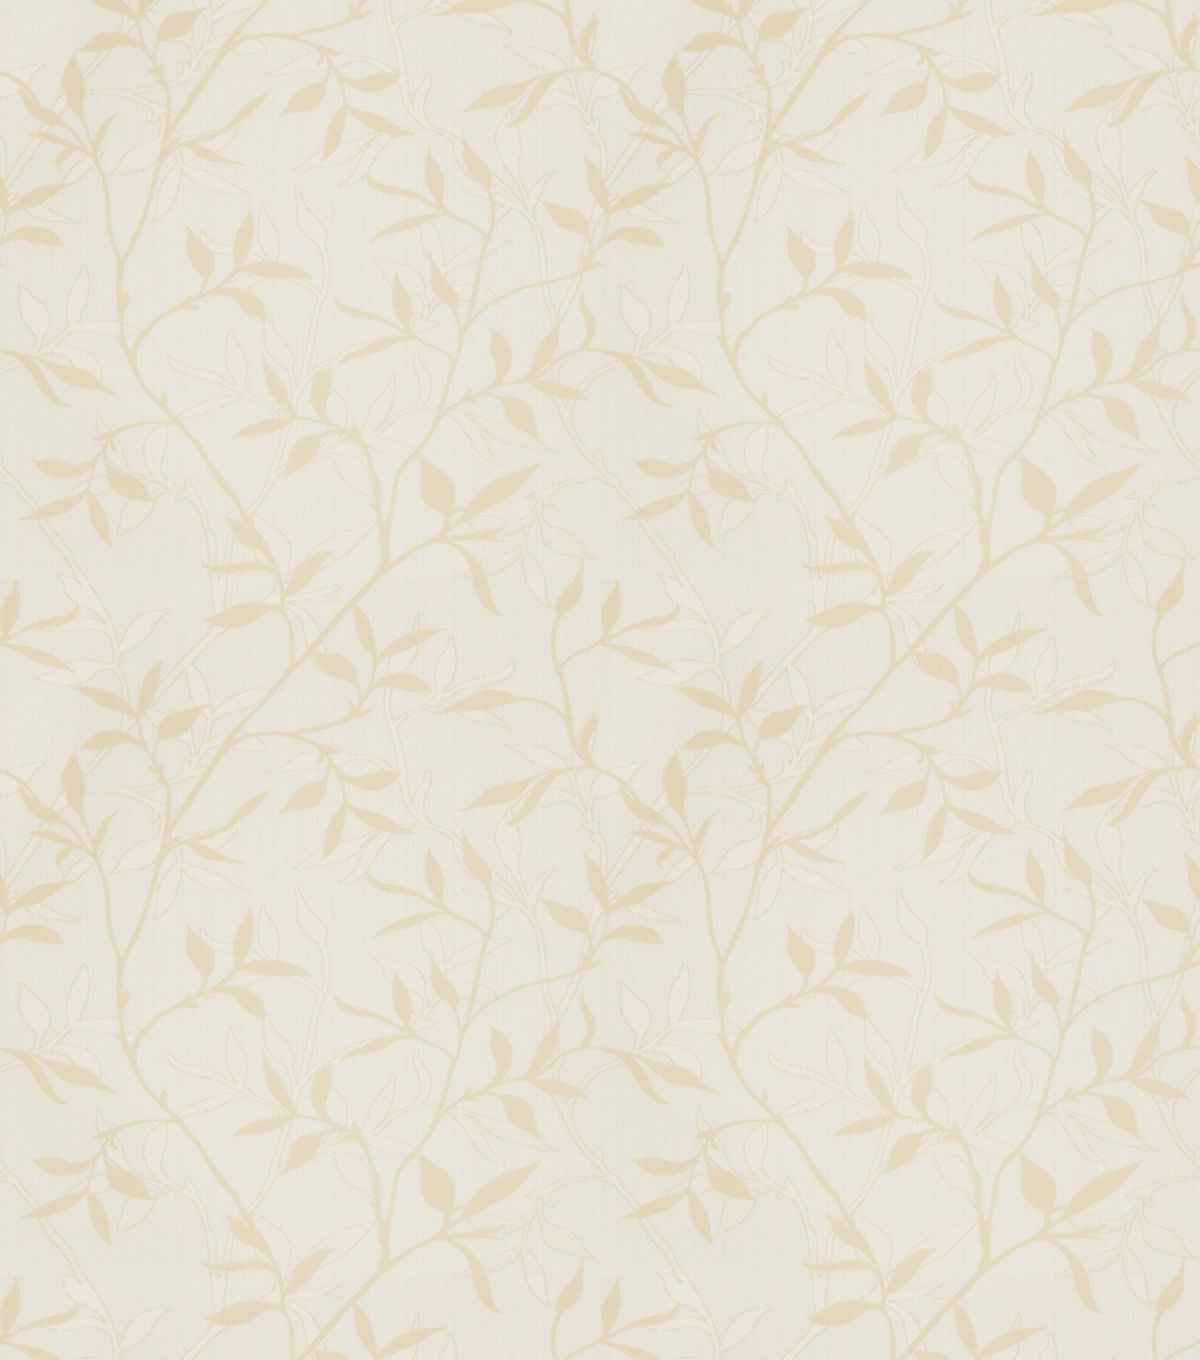 Home Decor 8x8 Fabric Swatch-Eaton Square Holcomb Cream